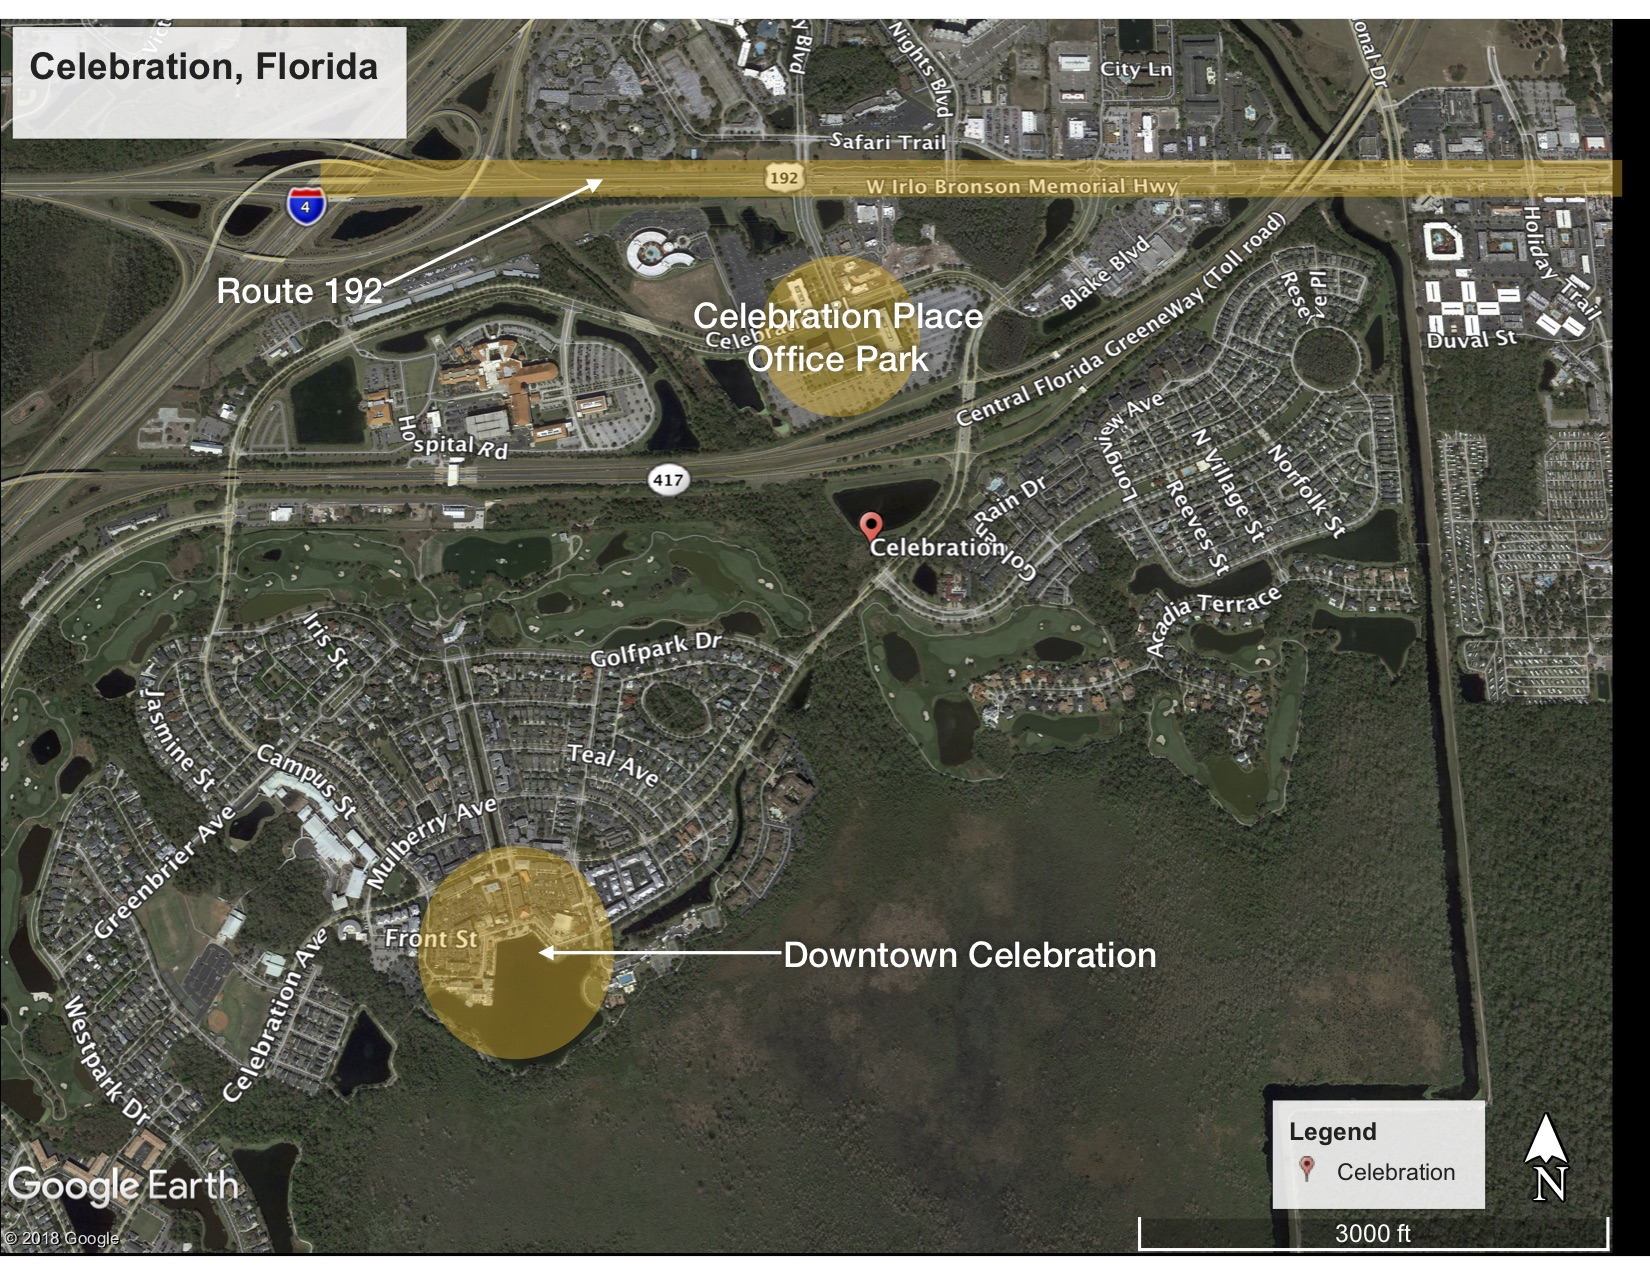 Downtown Celebration and its relationship to Route 192 and Celebration Place Office Park